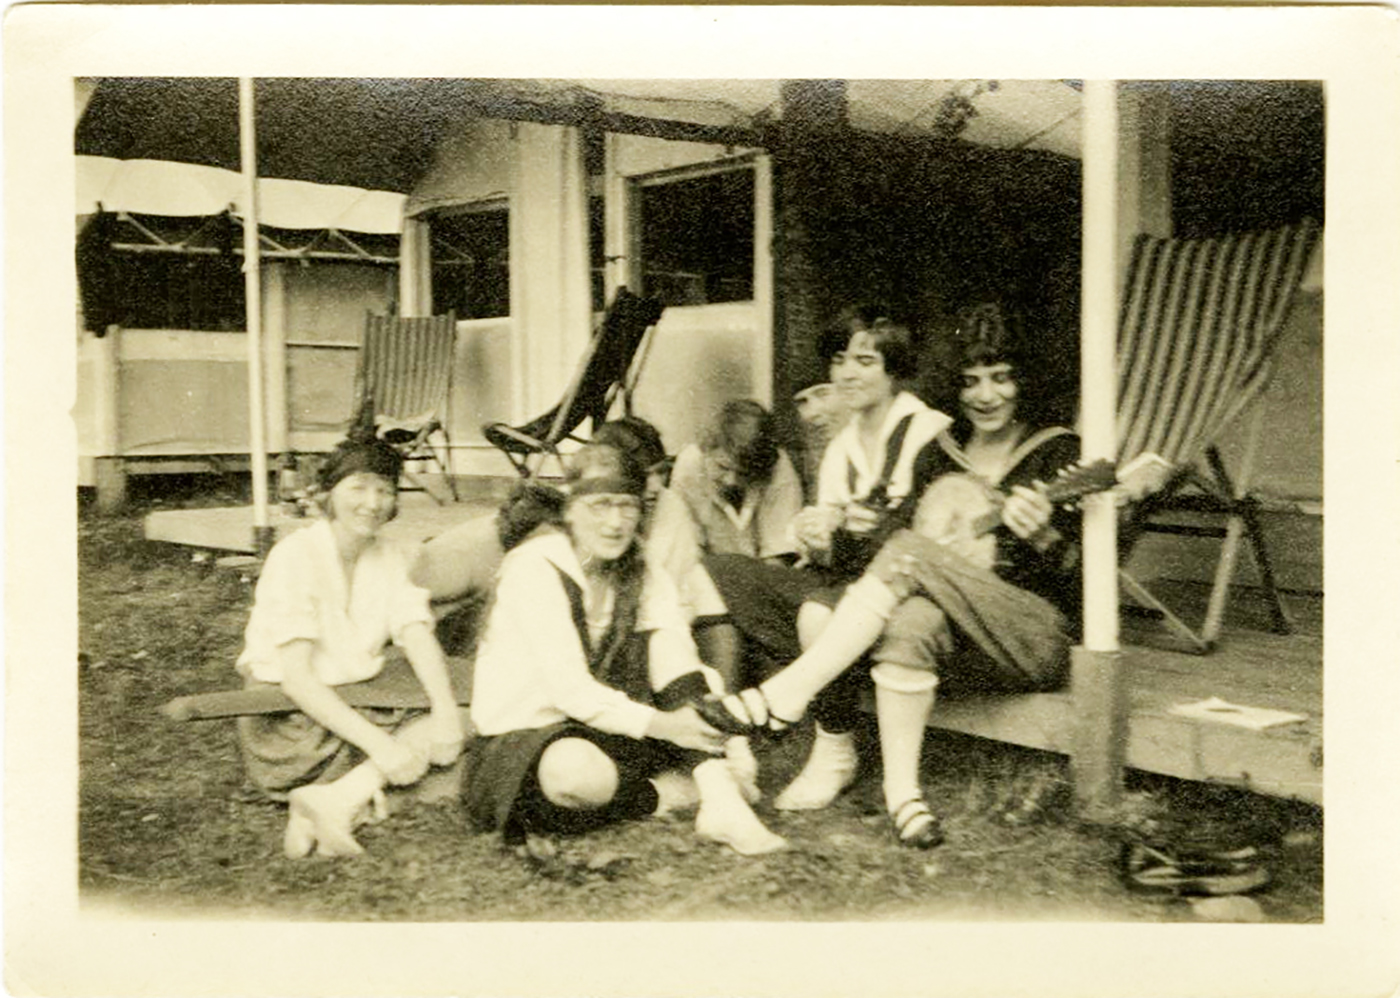 G.E. camp for female employees and family in Tongue Mountain on Lake George, circa 1920.